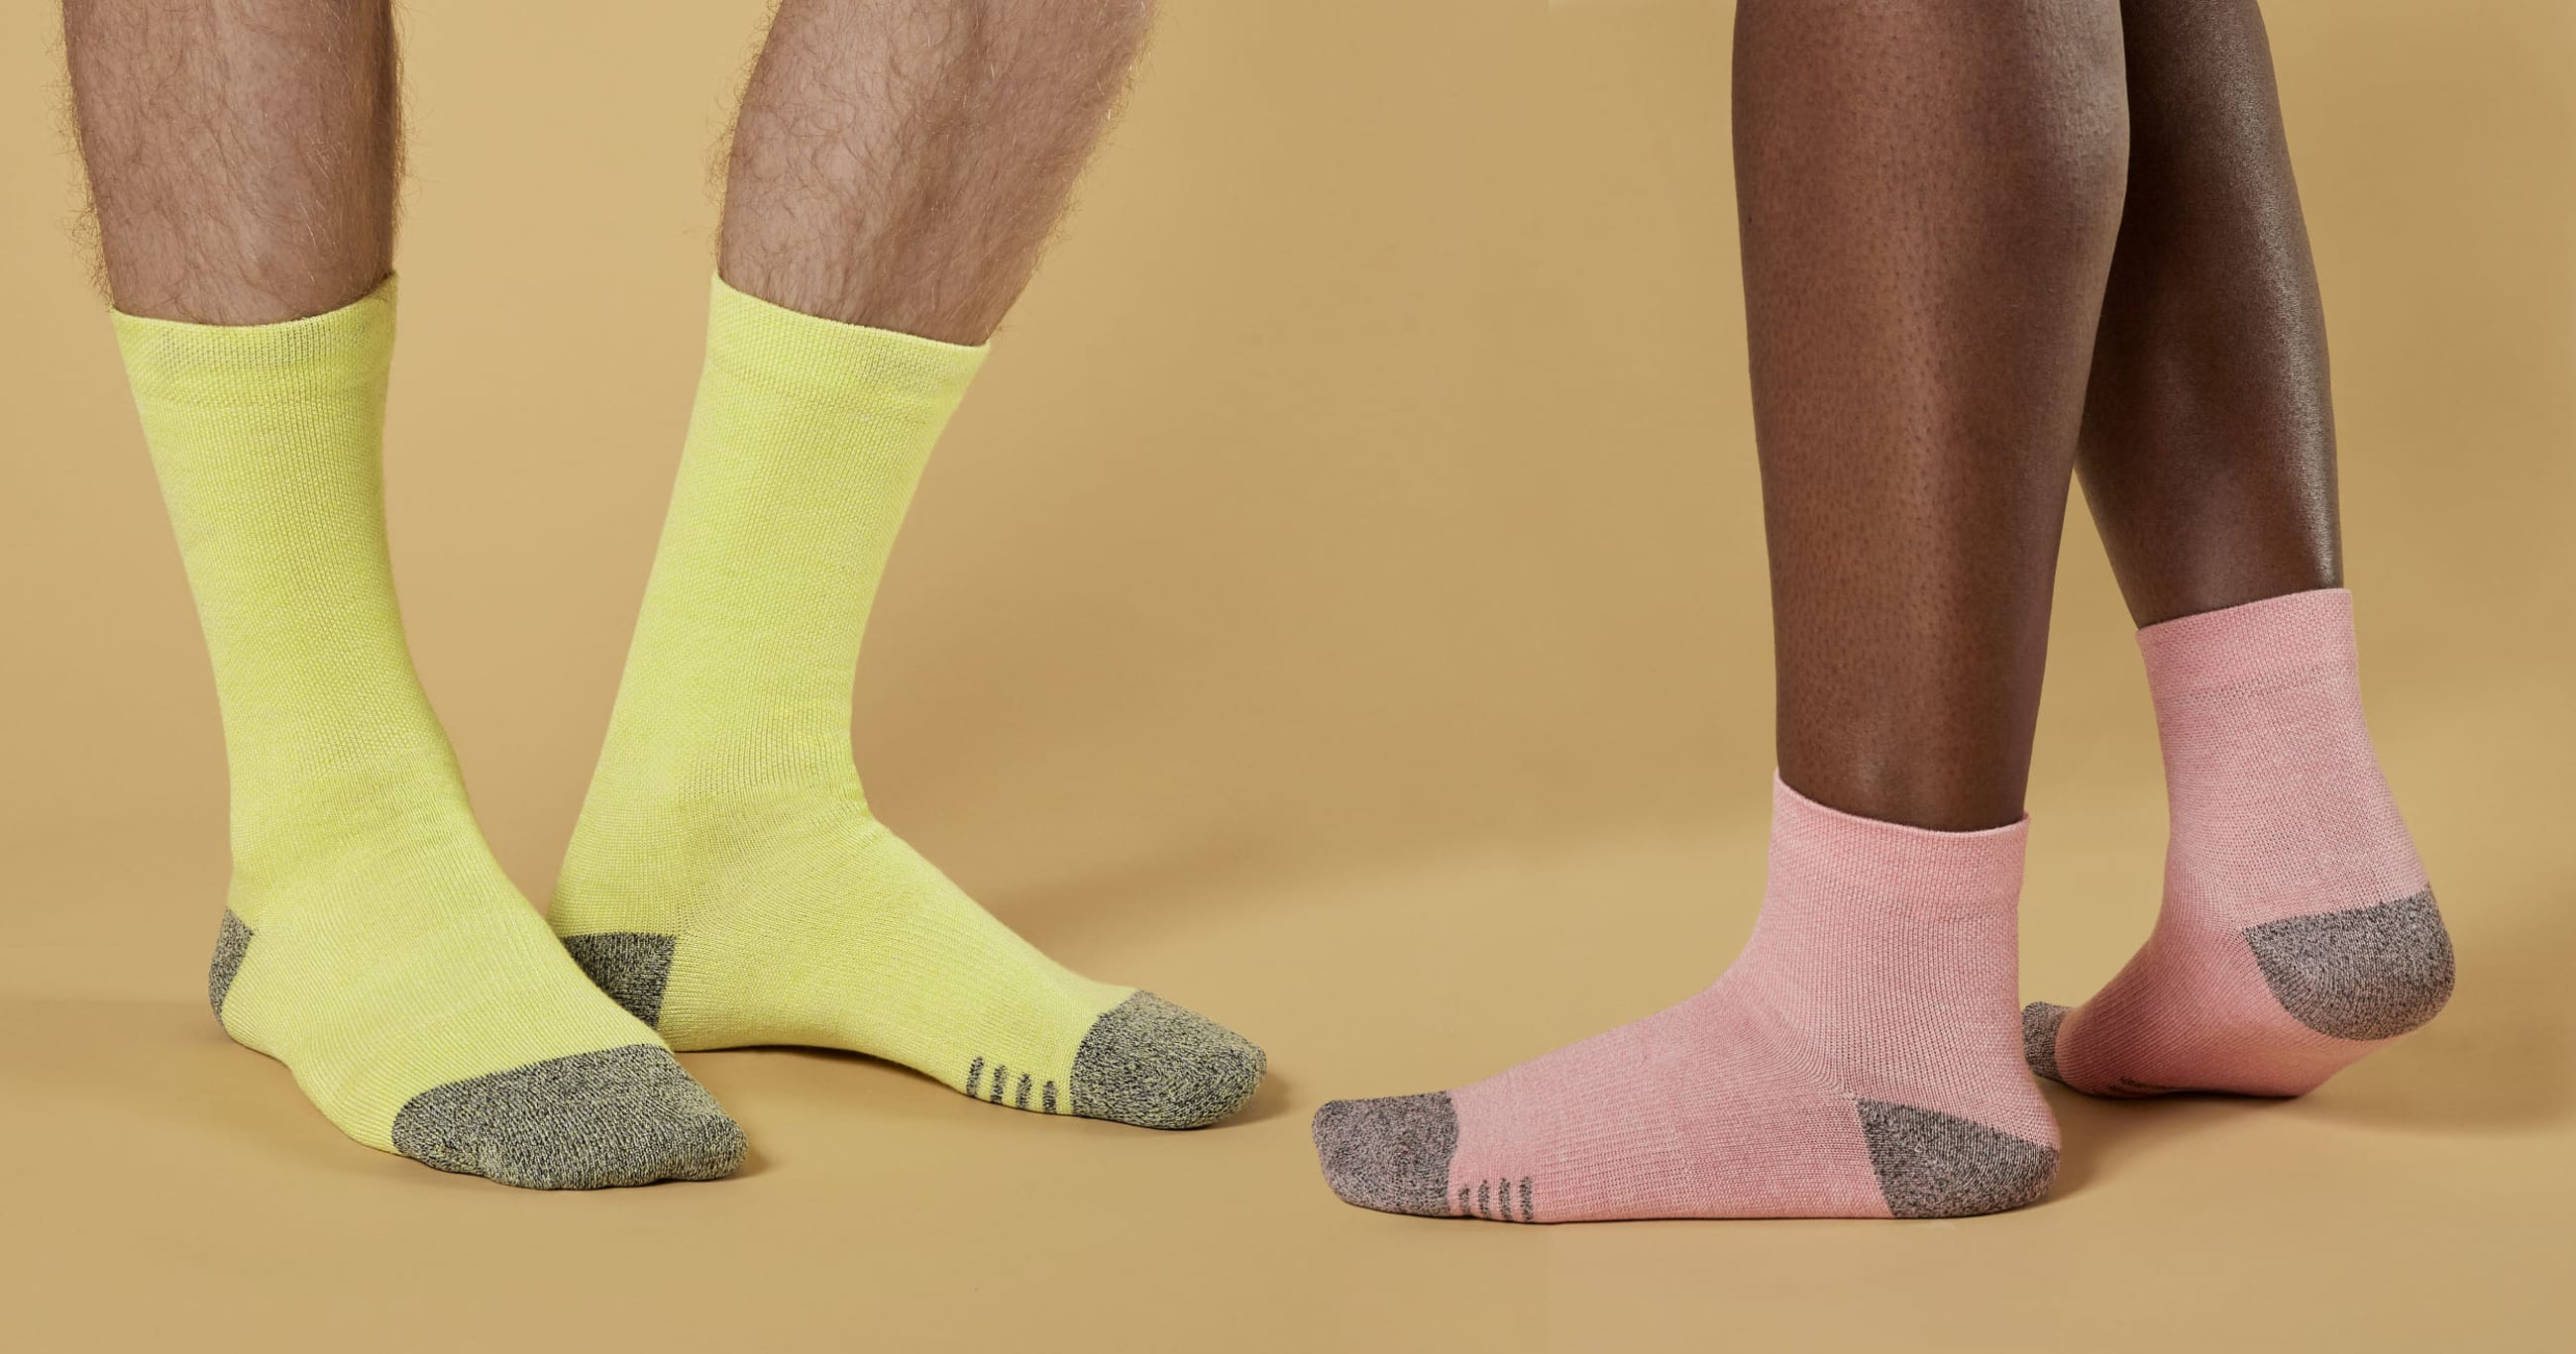 Feet wearing Allbirds socks